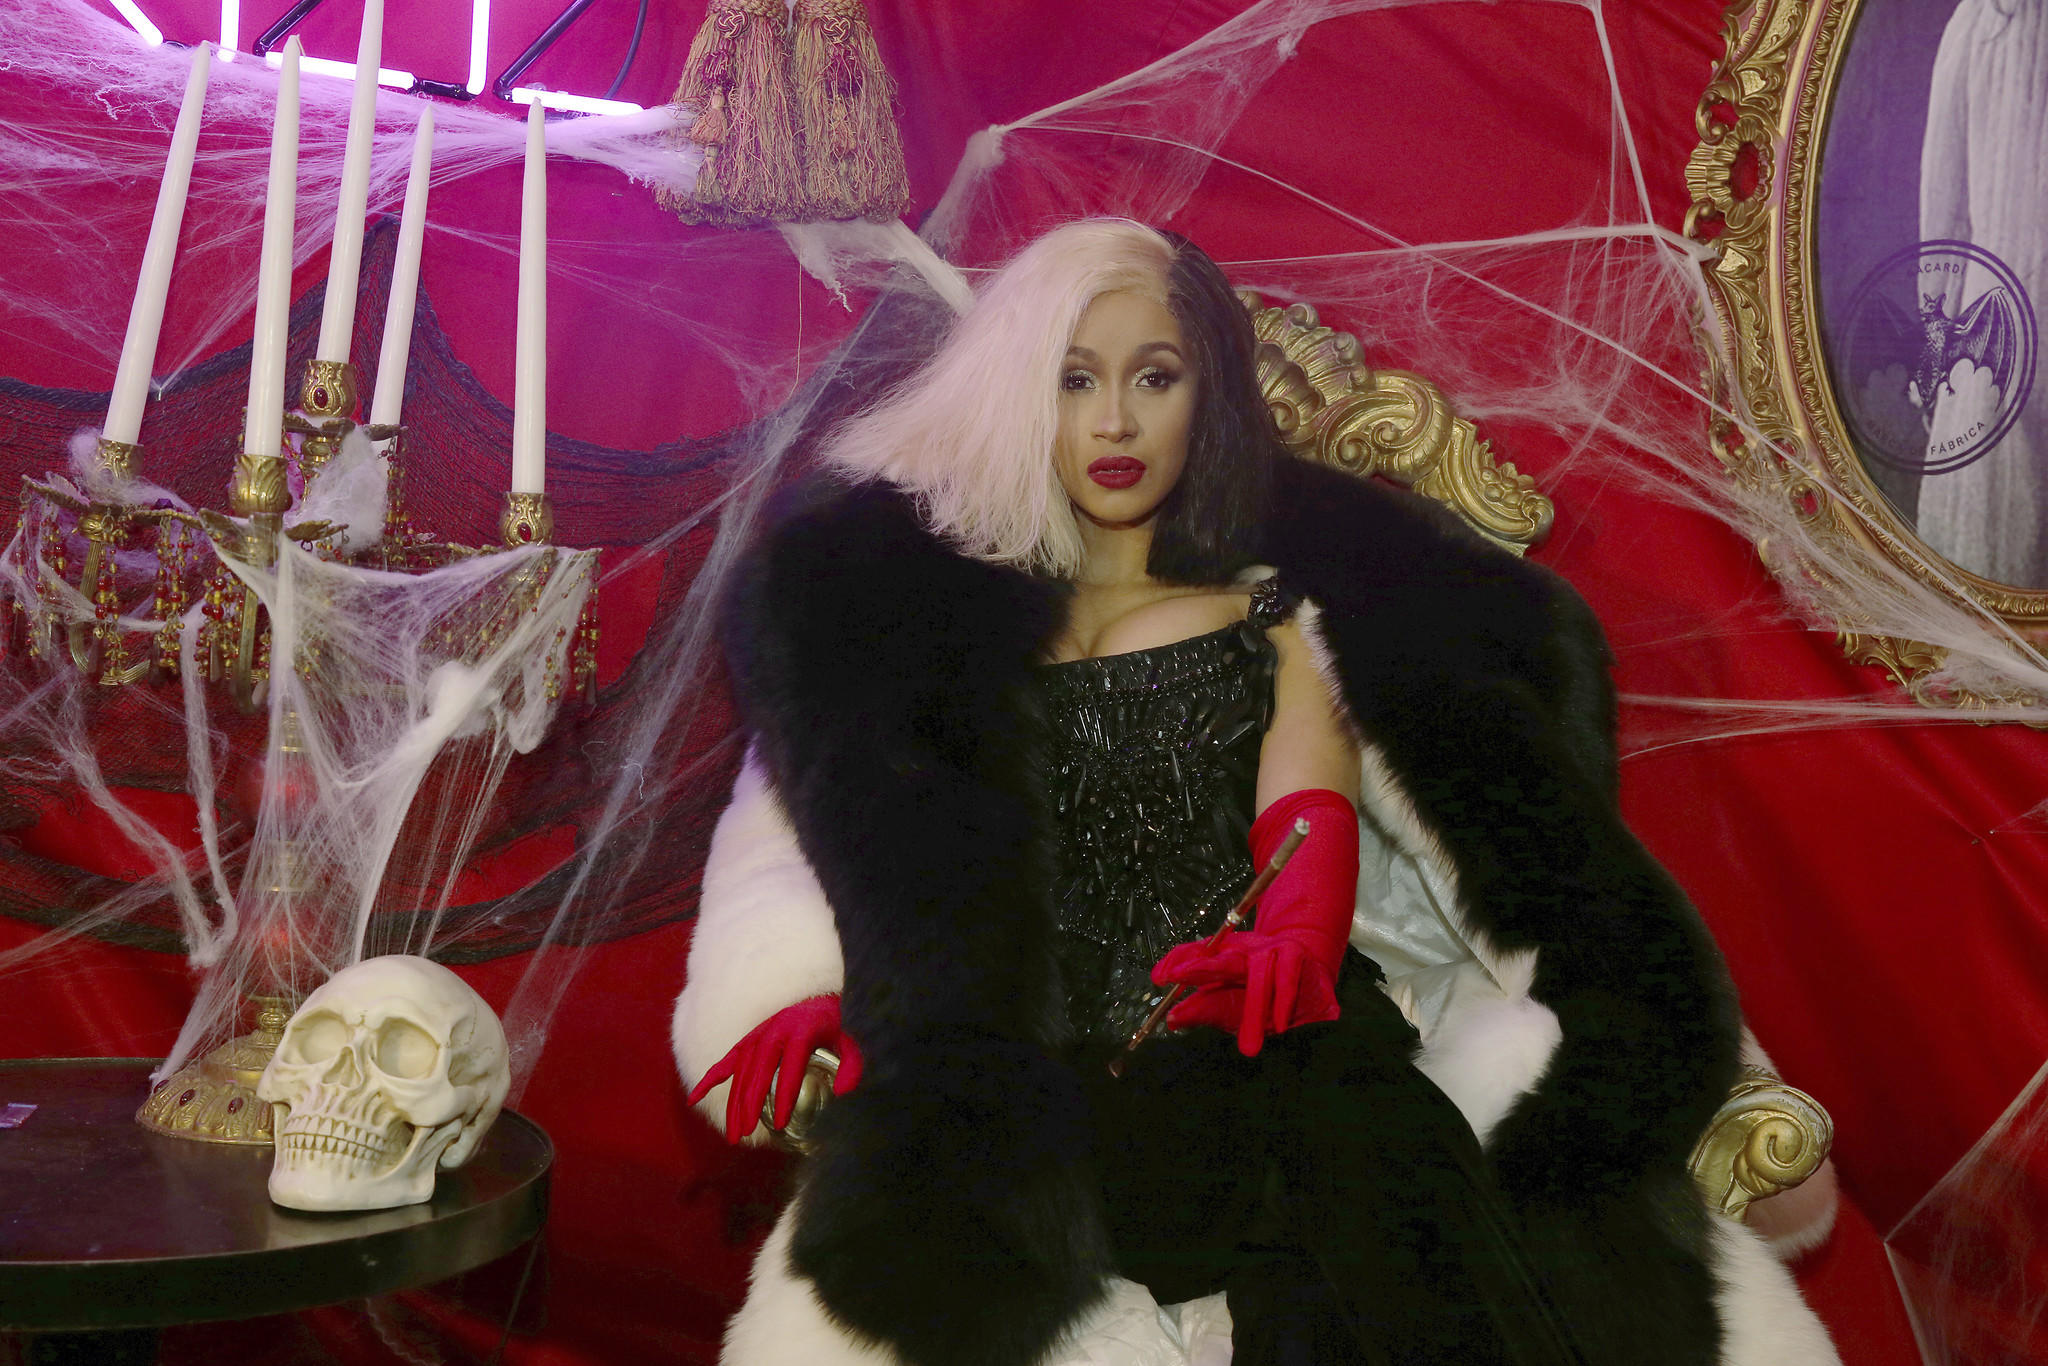 Cardi B channels Cruella de Vil. (Donald Traill / Associated Press)